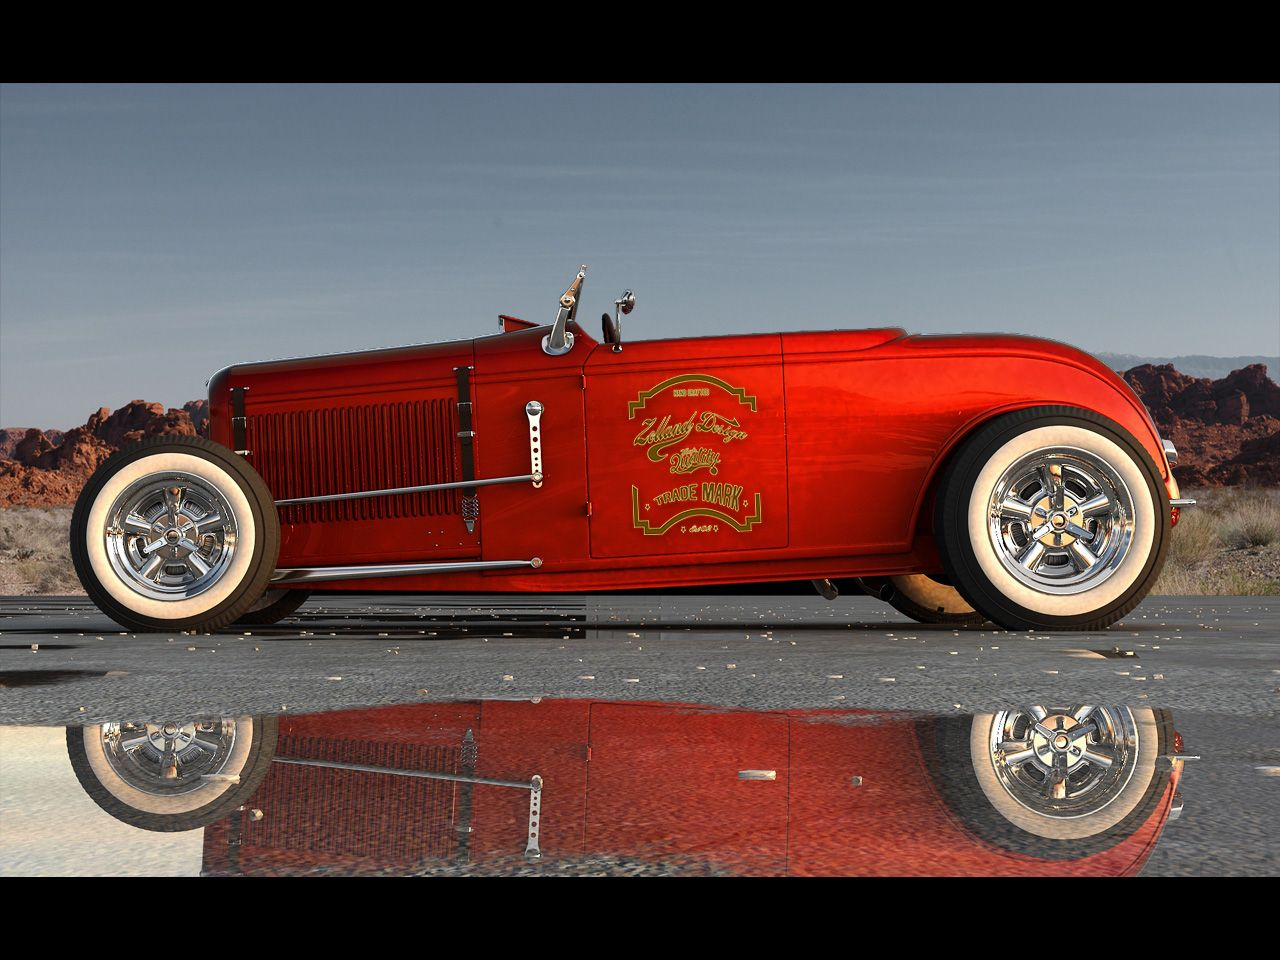 1929 1932 Ford Roadster By Zolland Design Static 1 1280x960 Wallpaper Ford Roadster Hot Rods Cars Muscle 1932 Ford Roadster